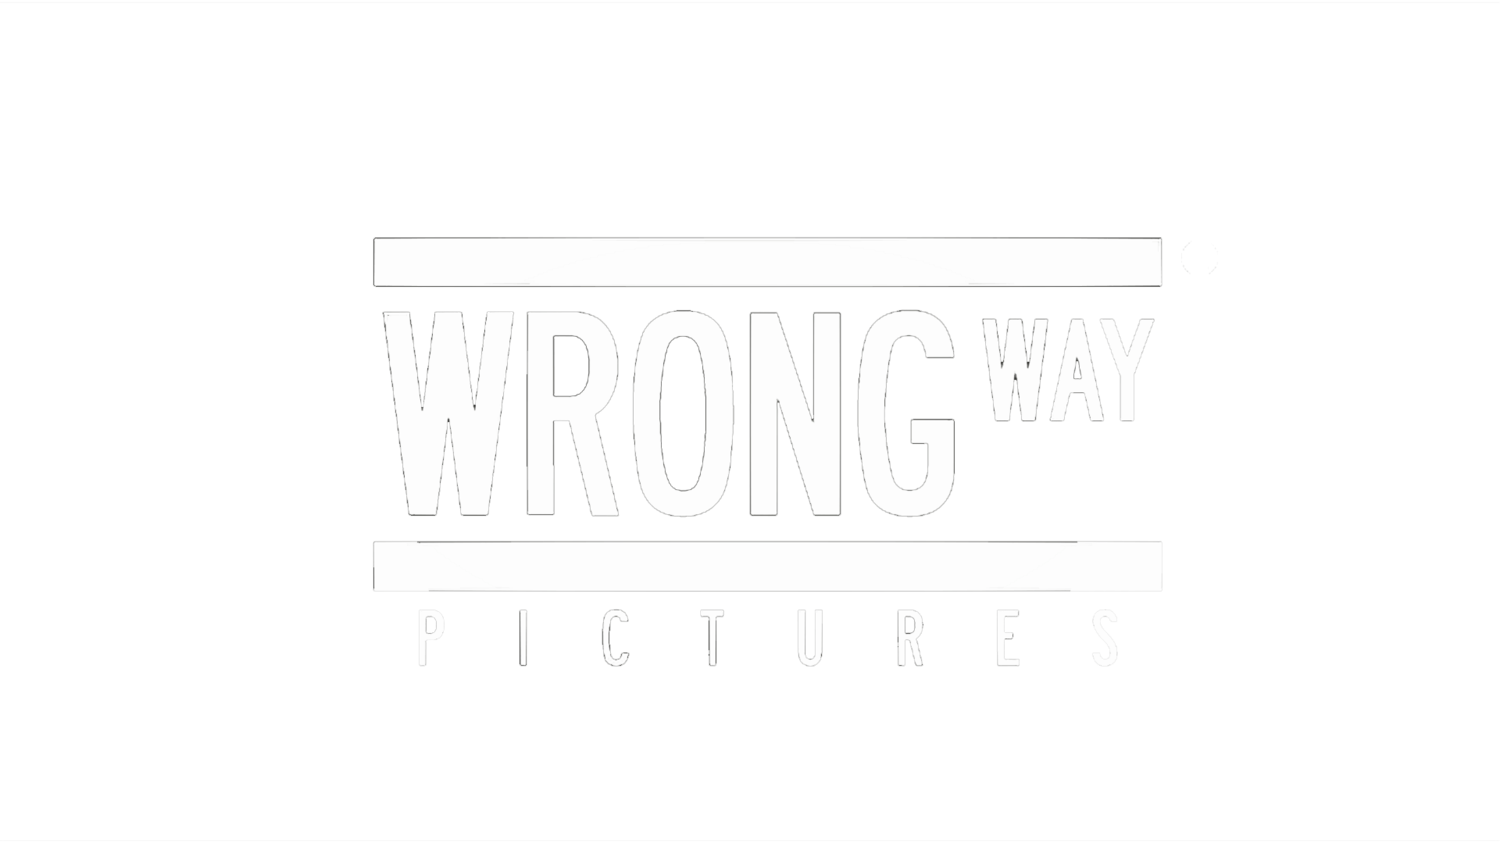 Wrong Way Pictures